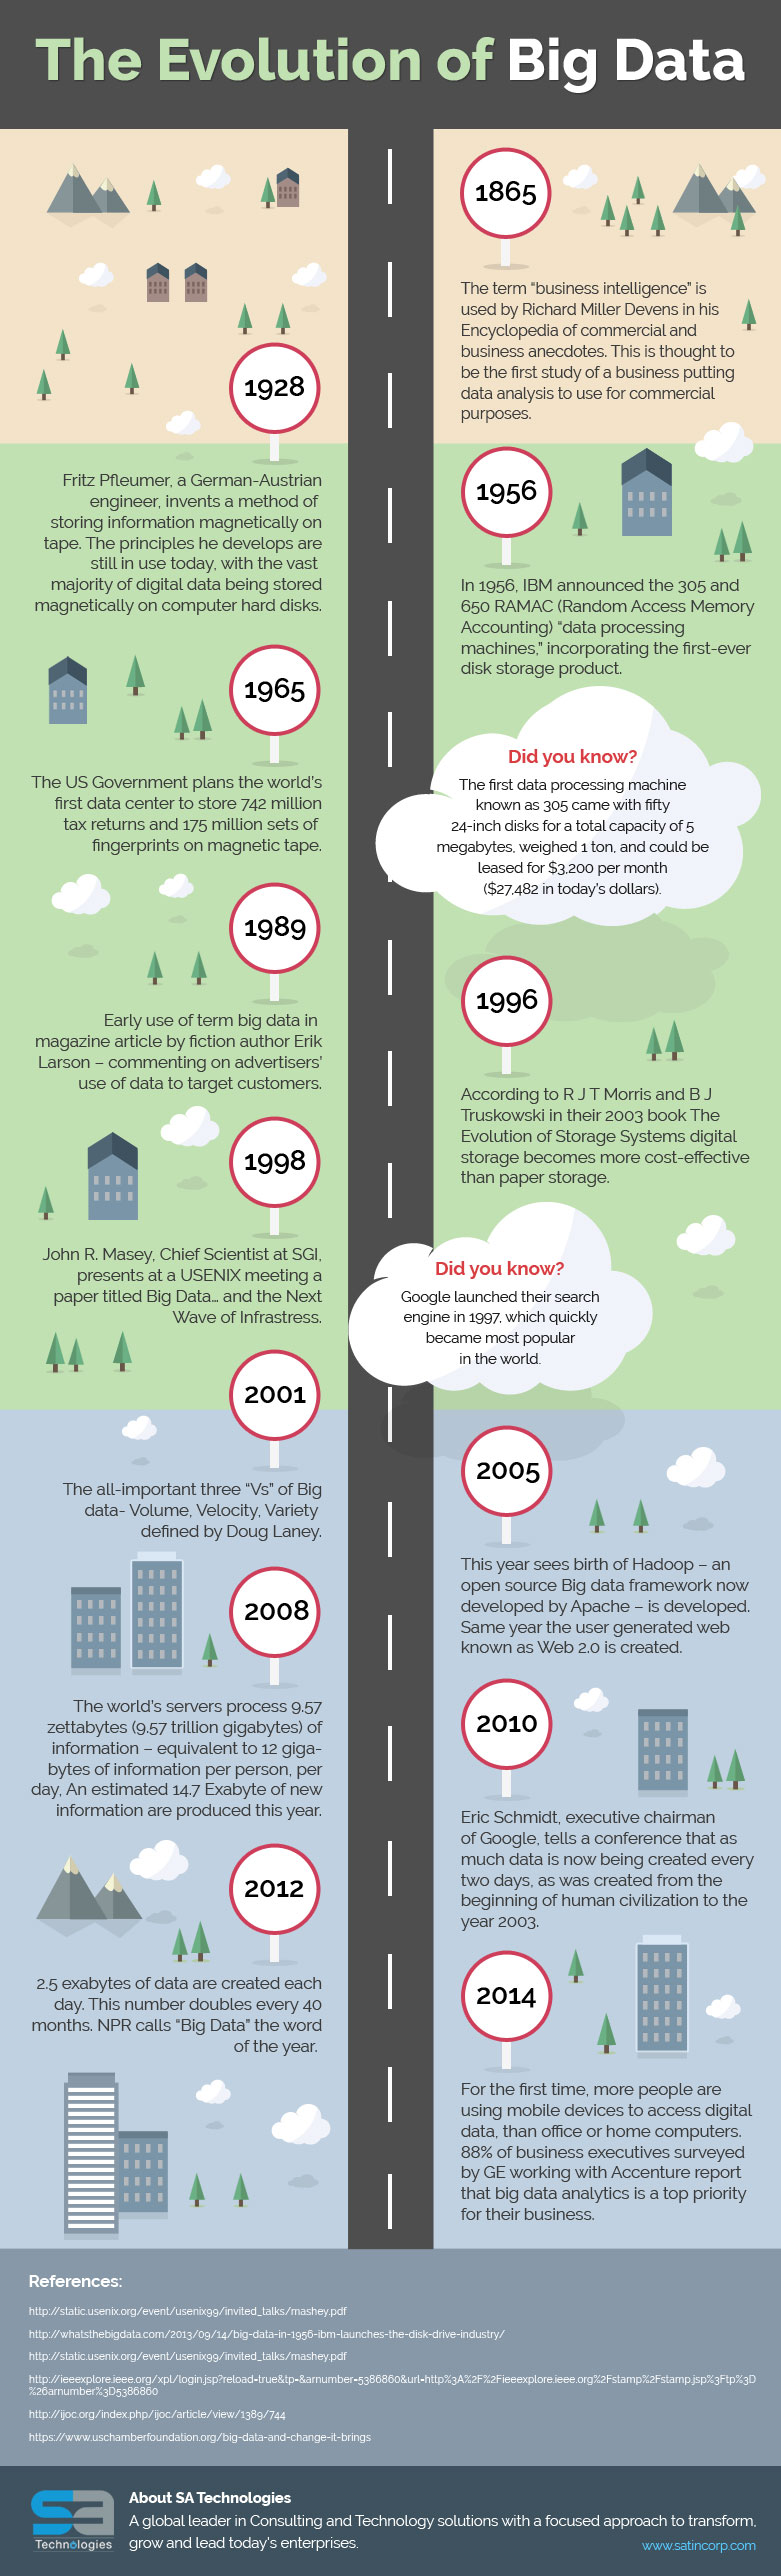 The Evolution of Big Data - Image 1